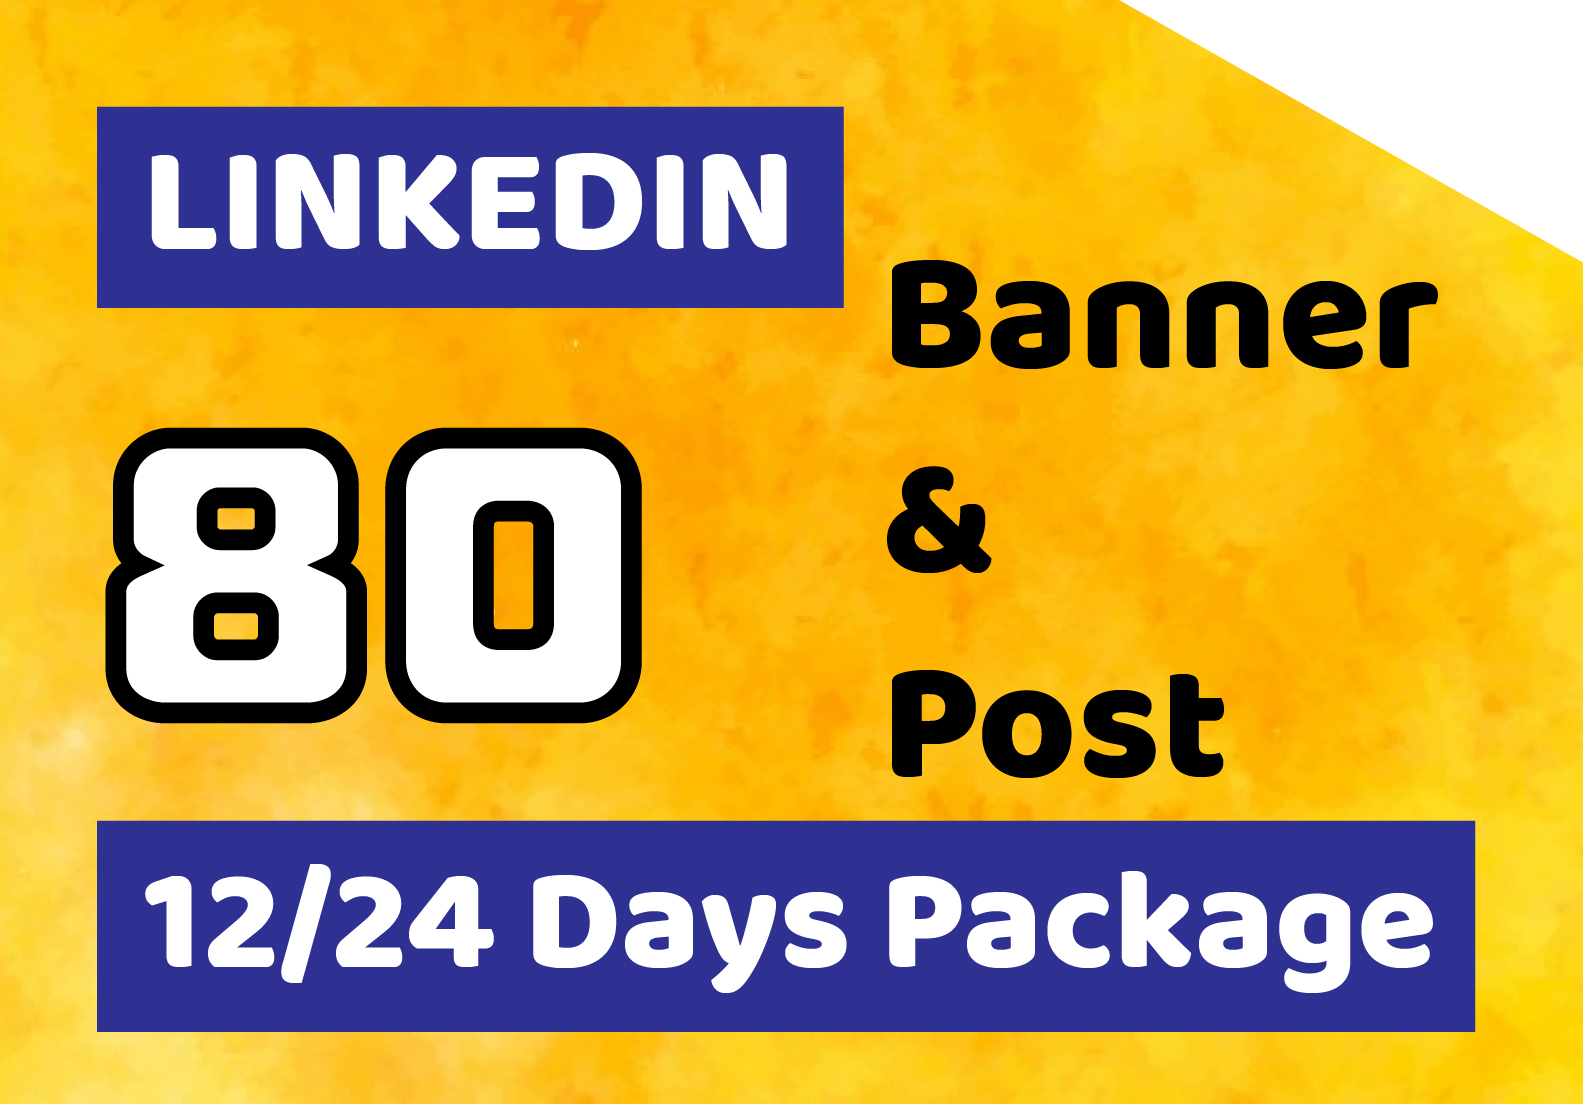 I will create 40 linkedin posts and banner design